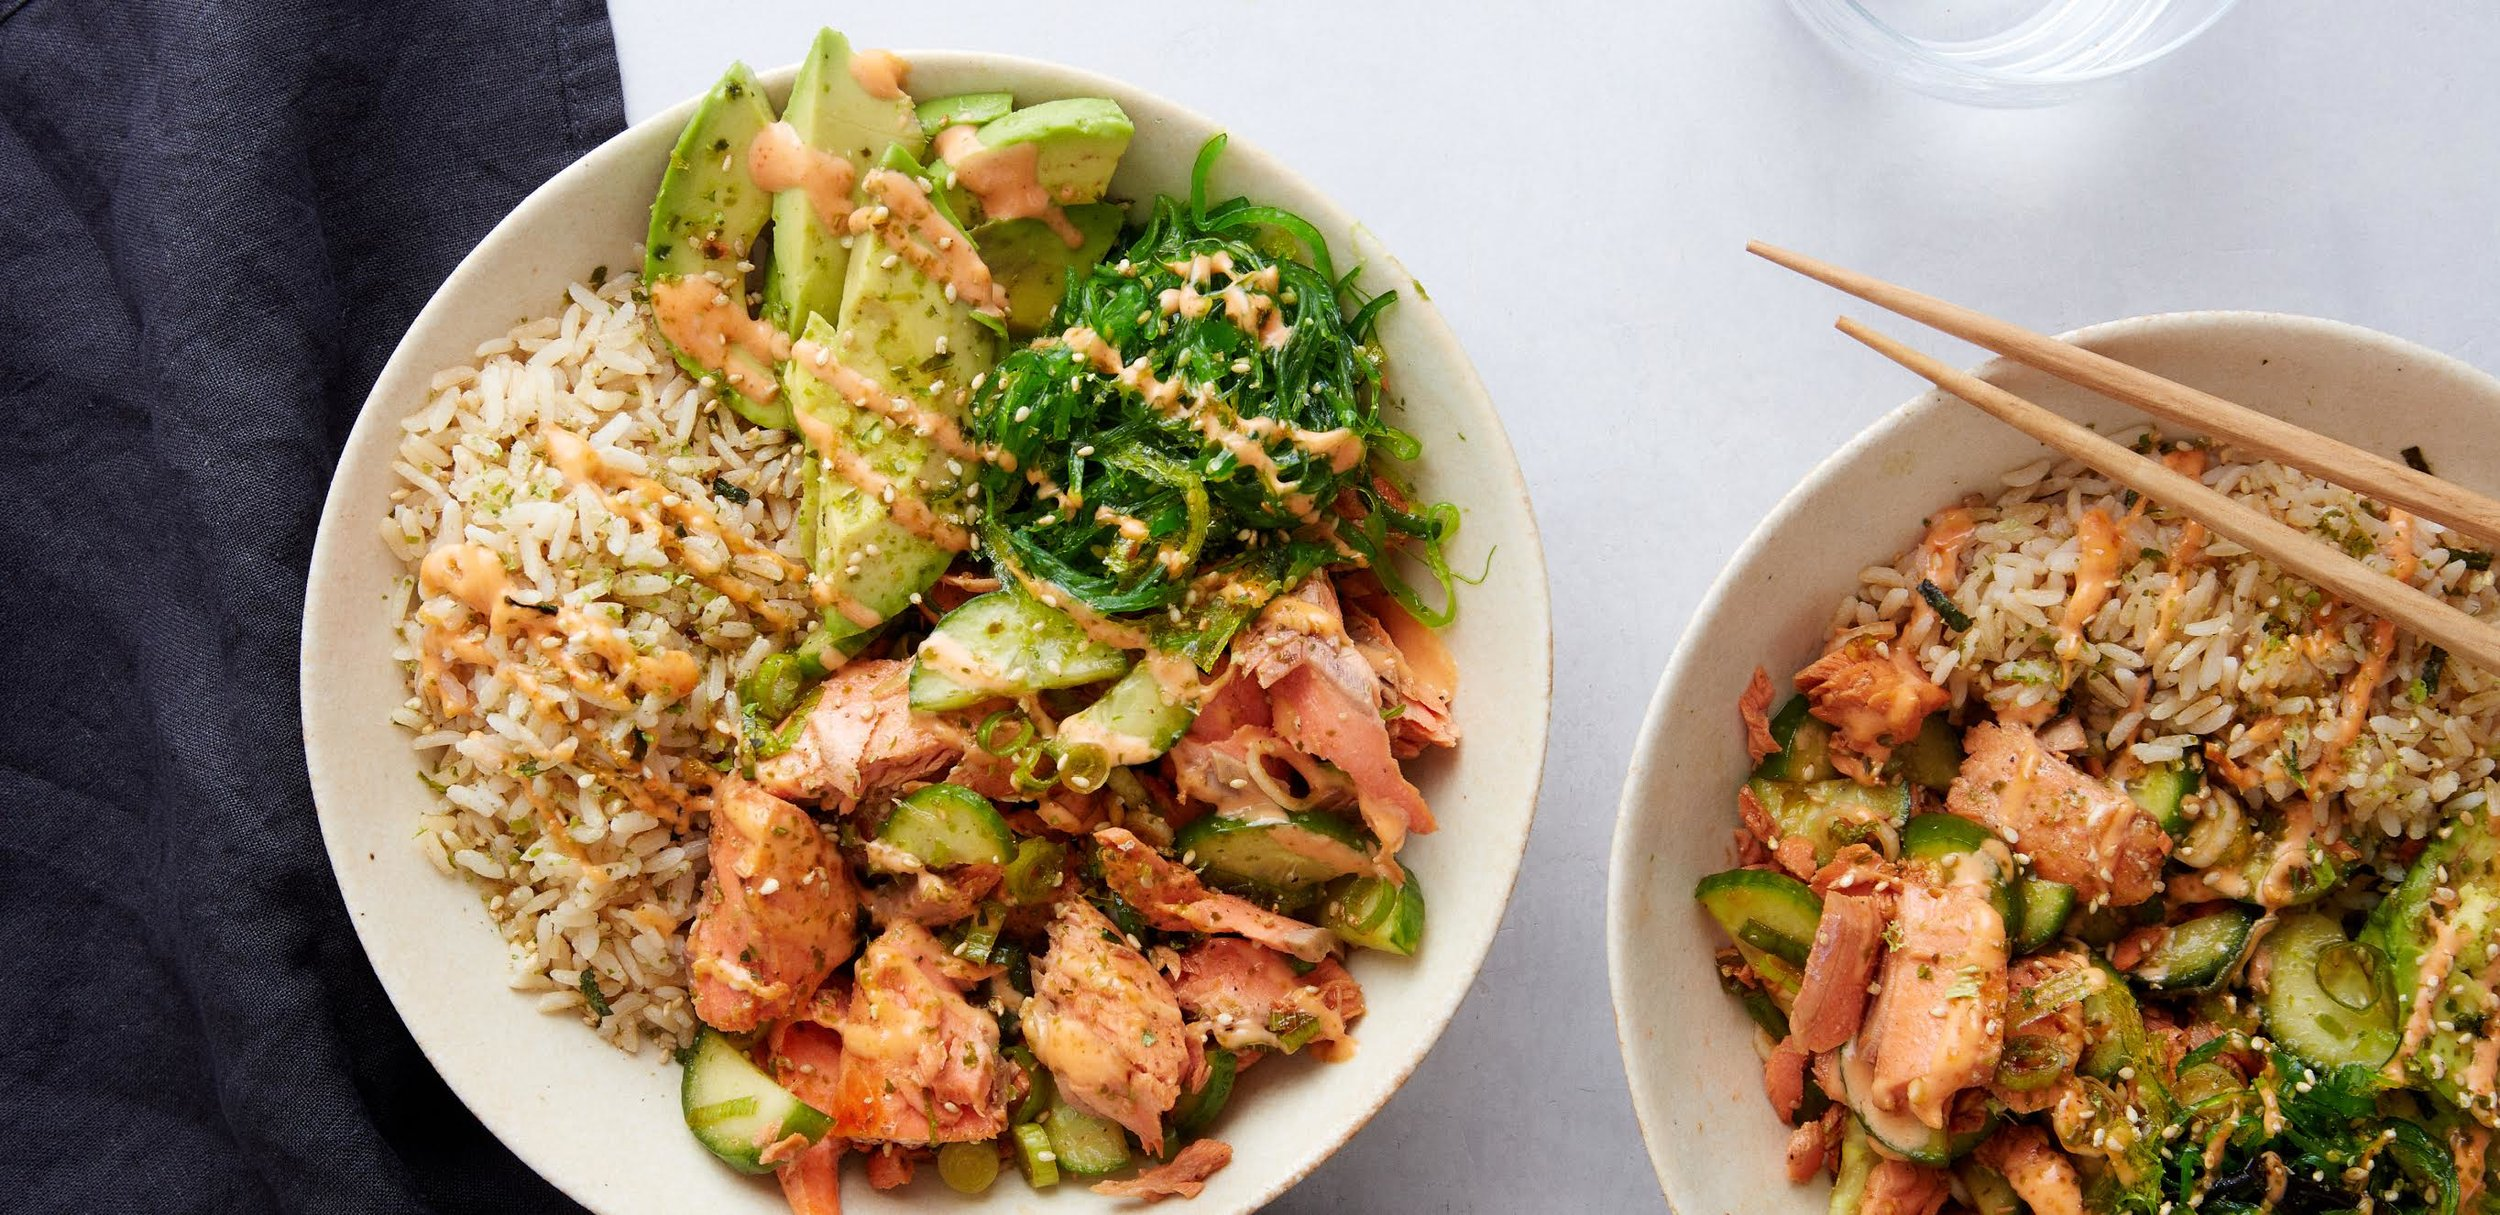 Plated Meal Delivery Service Review - Salmon poke bowl